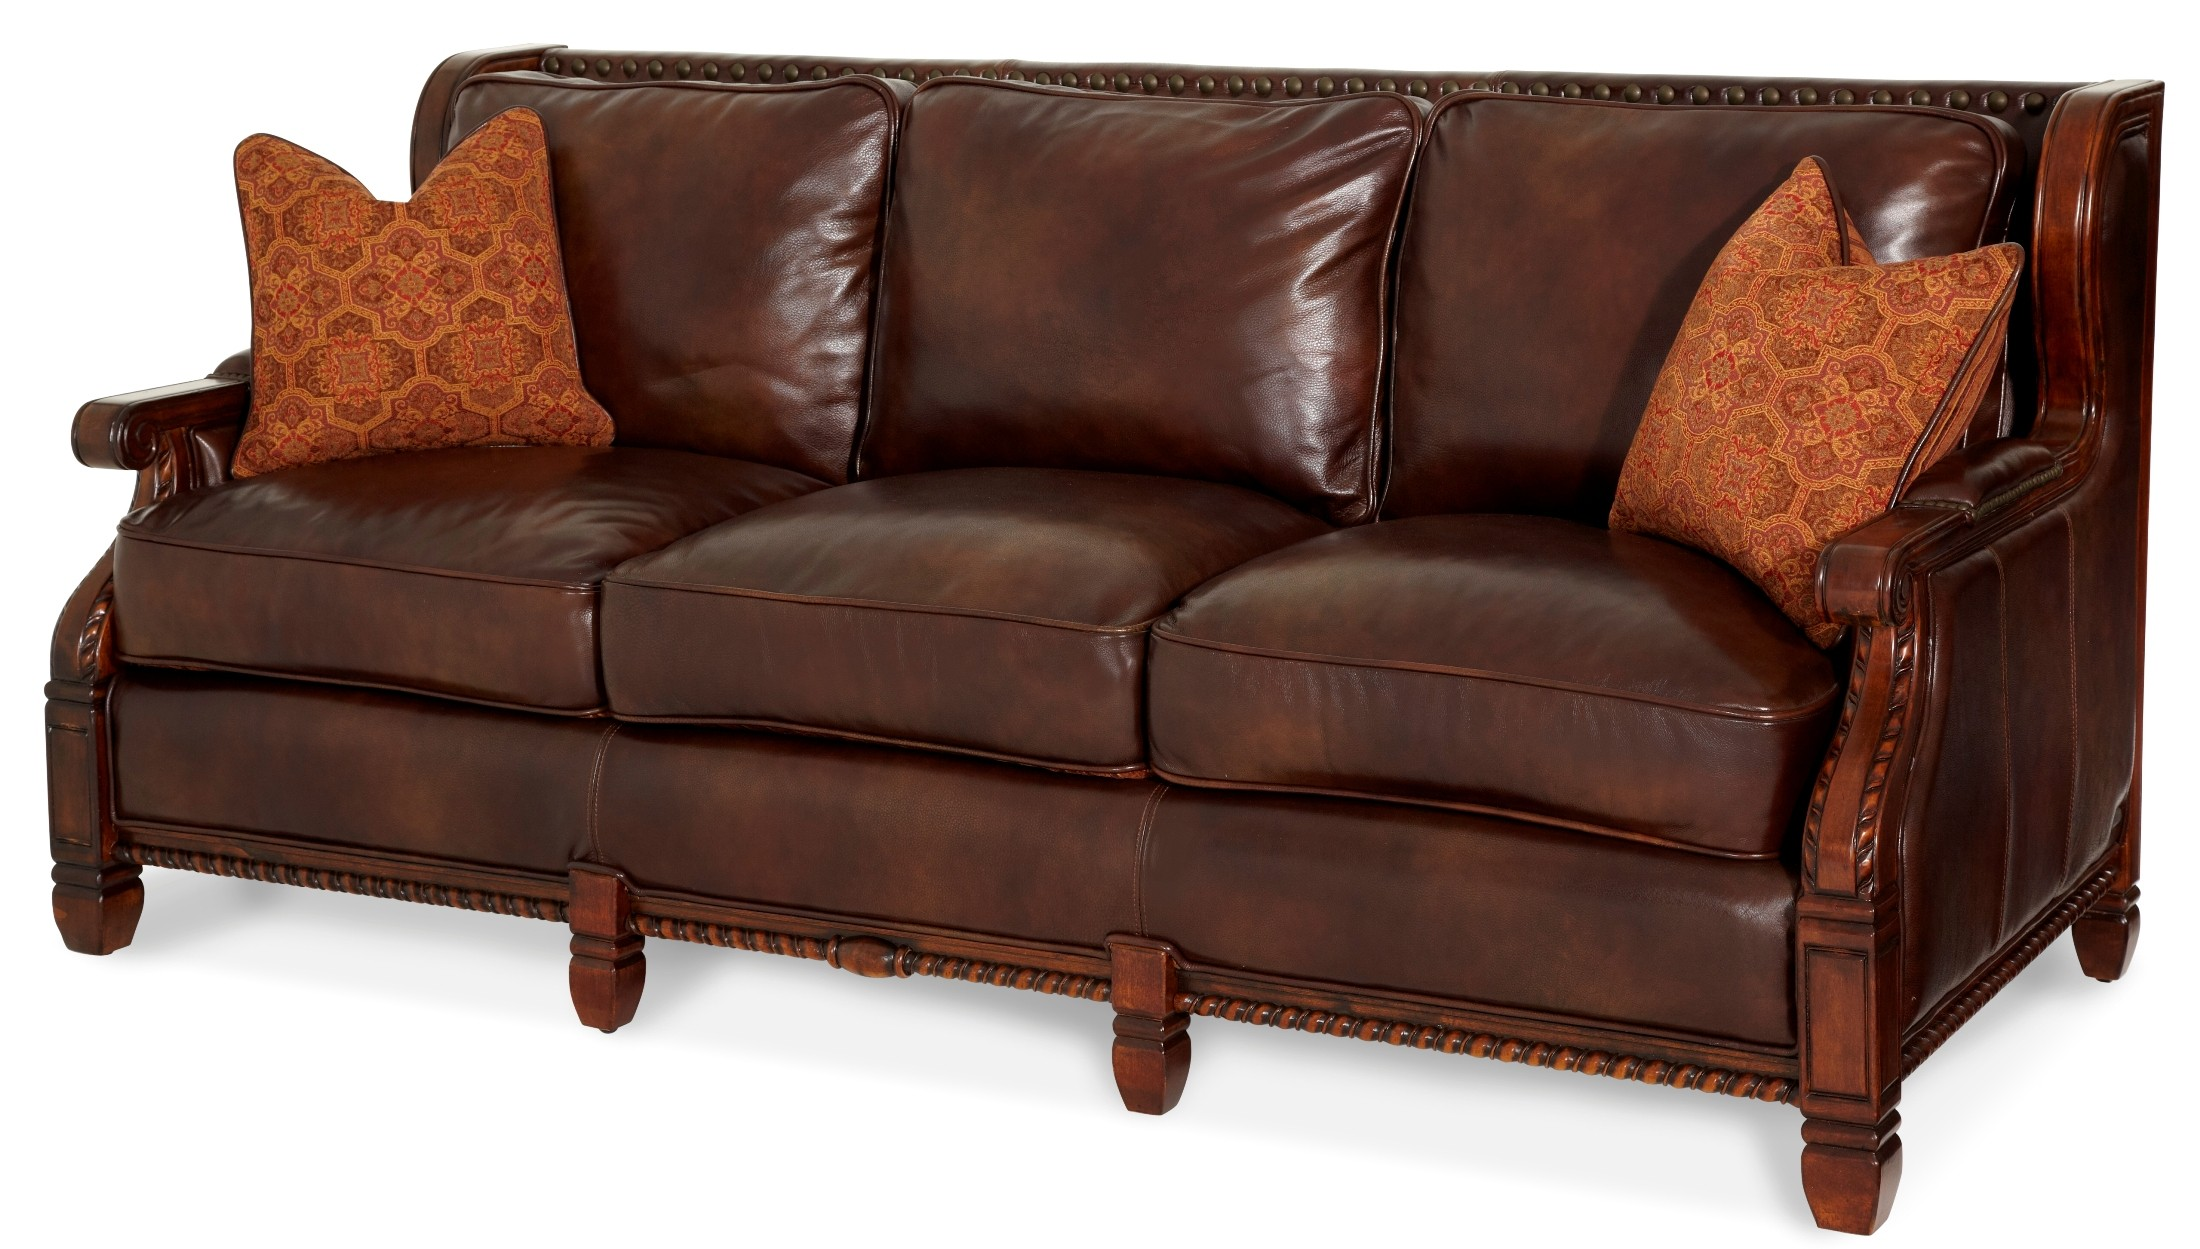 courts sofa best beds under 500 windsor court wood trim by aico furniture